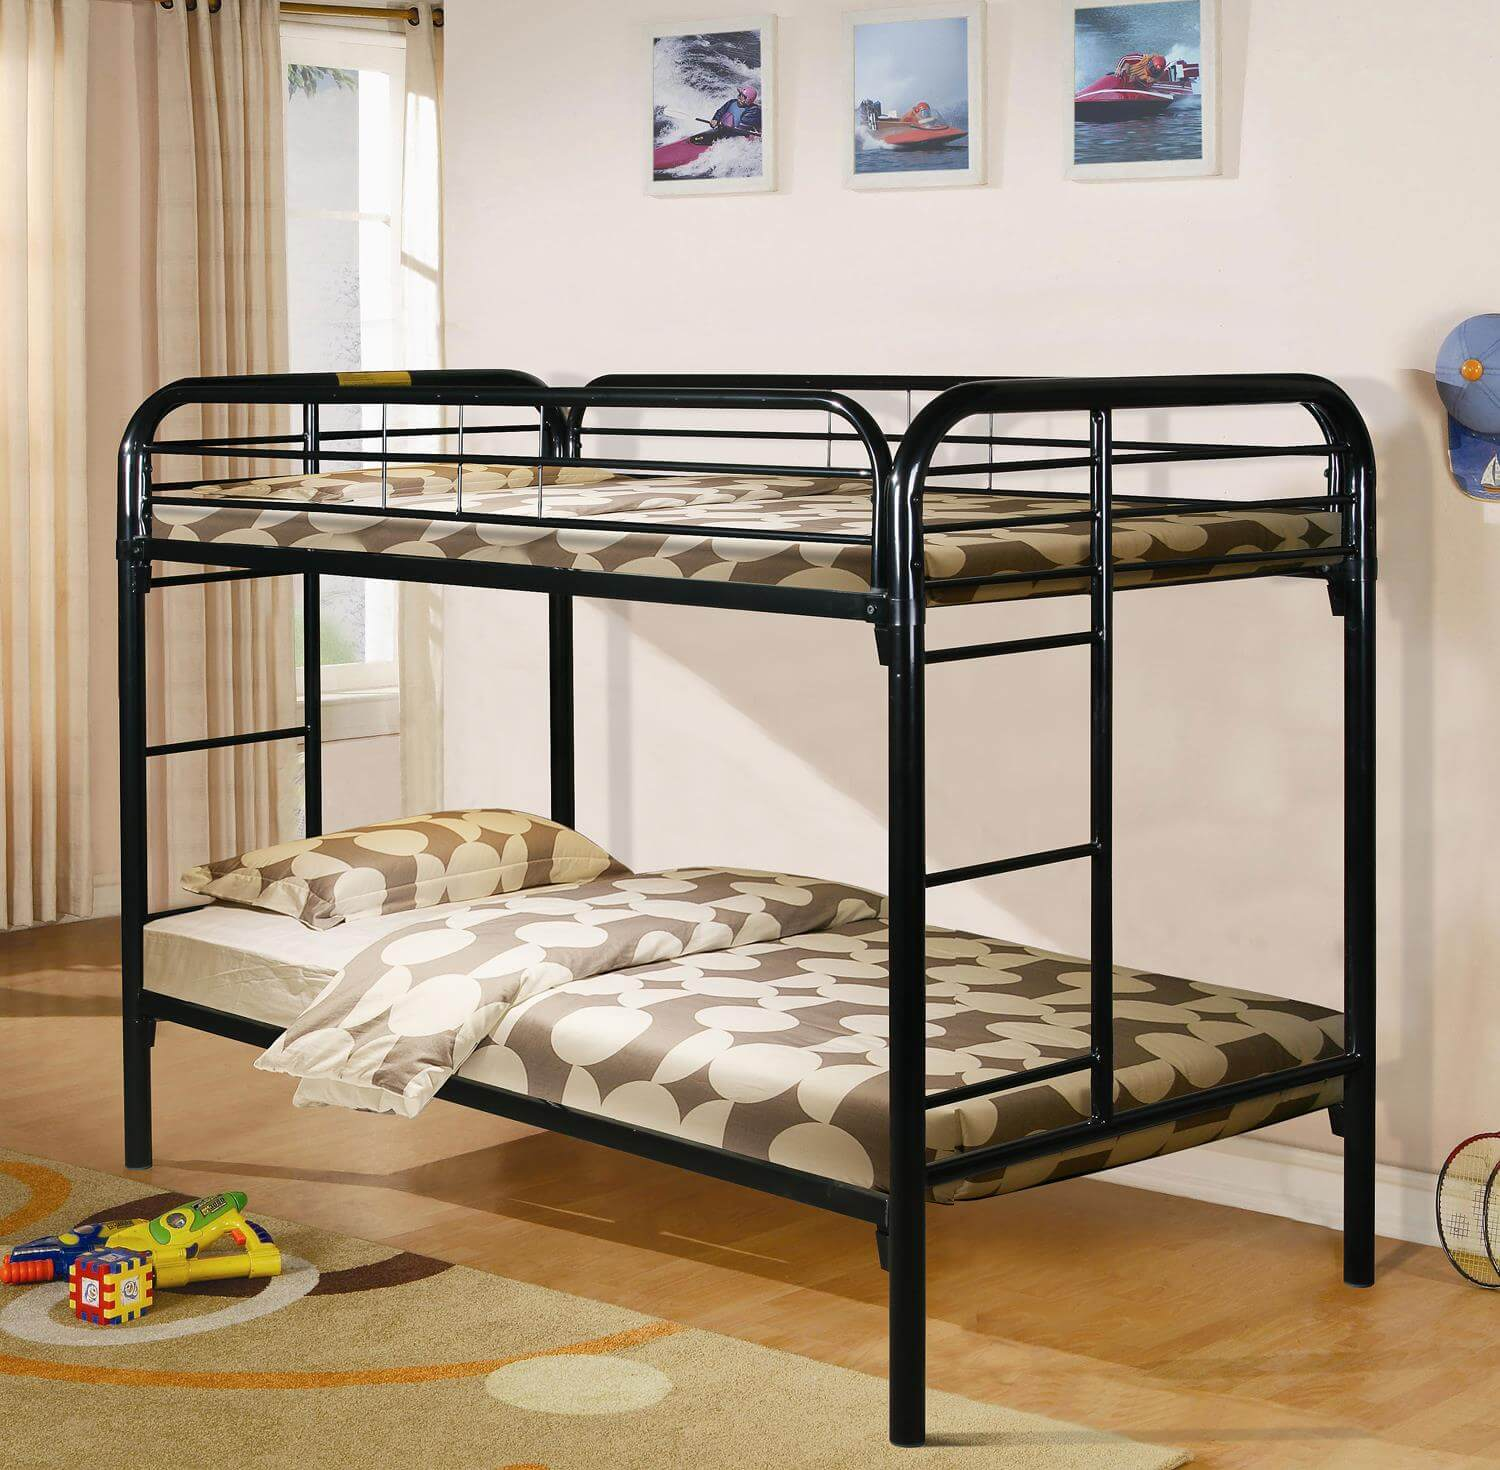 Black Iron Bunk Beds Cheaper Than Retail Price Buy Clothing Accessories And Lifestyle Products For Women Men